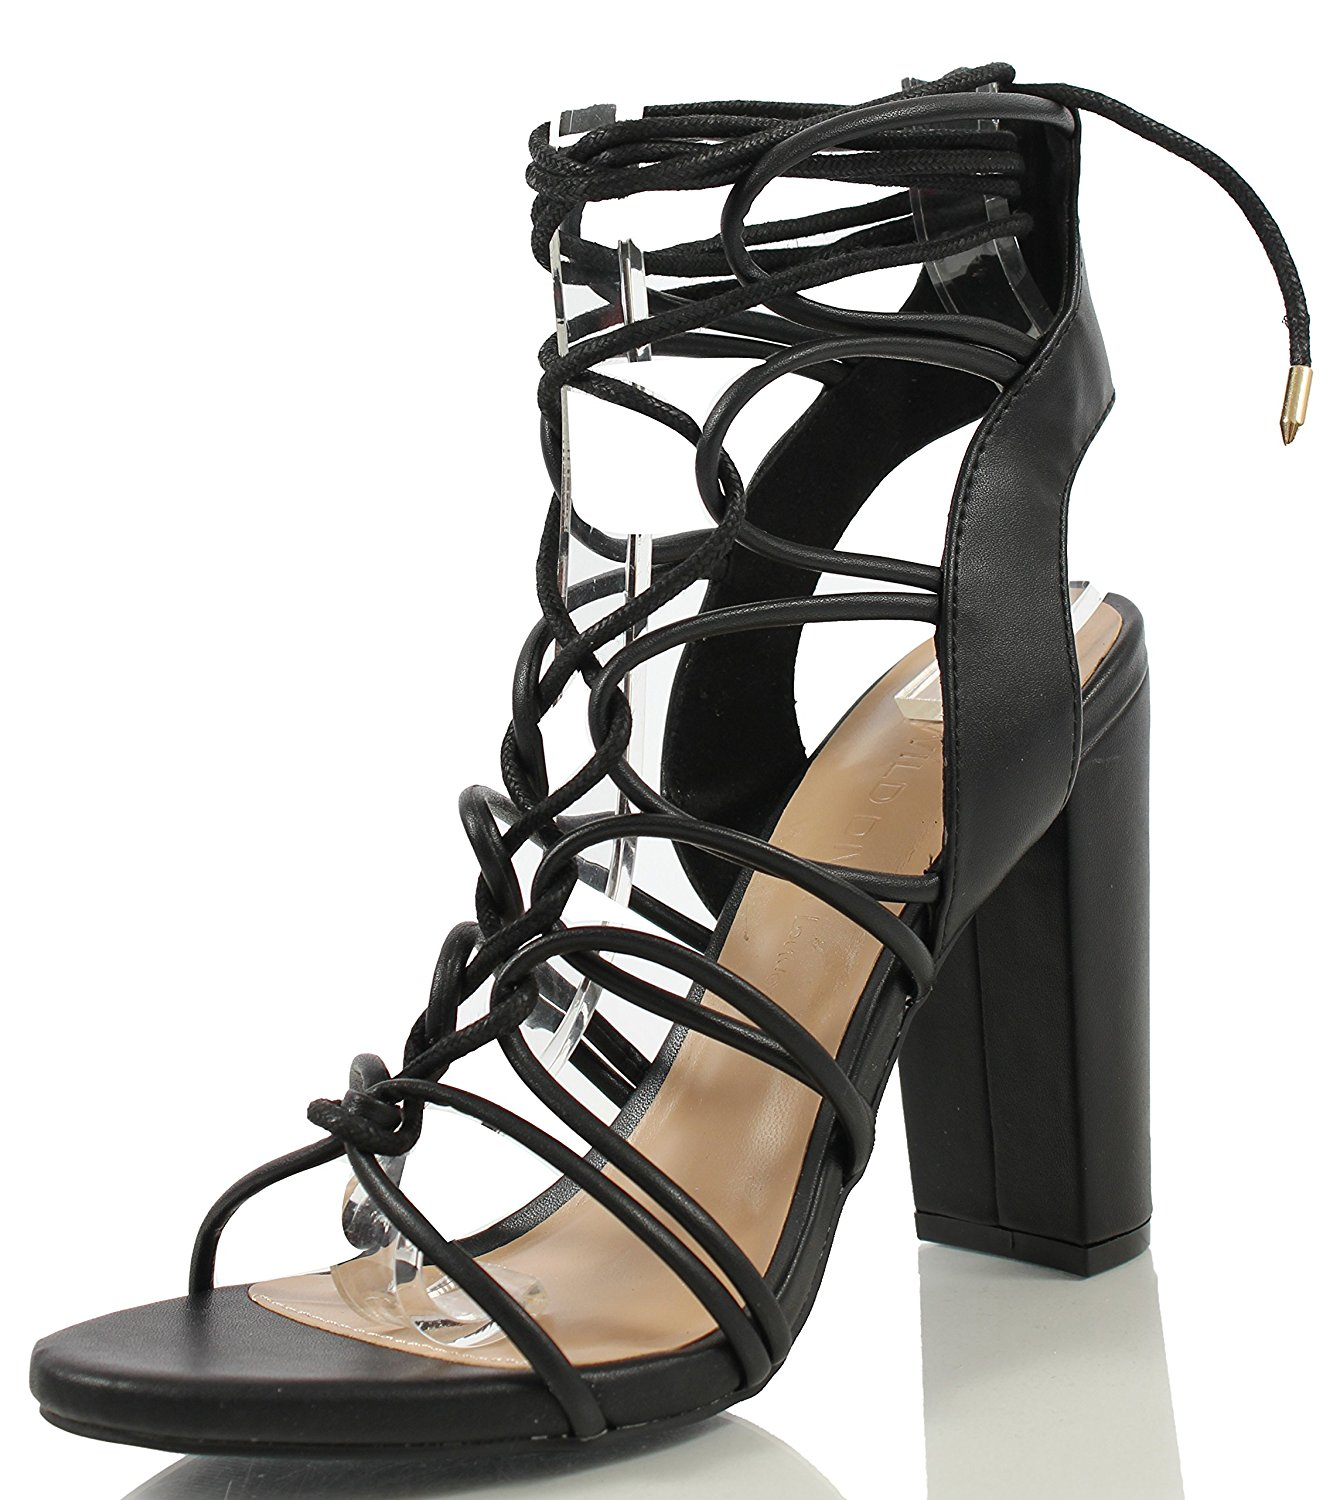 917c3cf824dac Buy Wild Diva Madison-93 Strappy Gladiator Wedges TAUPE 7.5 in Cheap Price  on m.alibaba.com